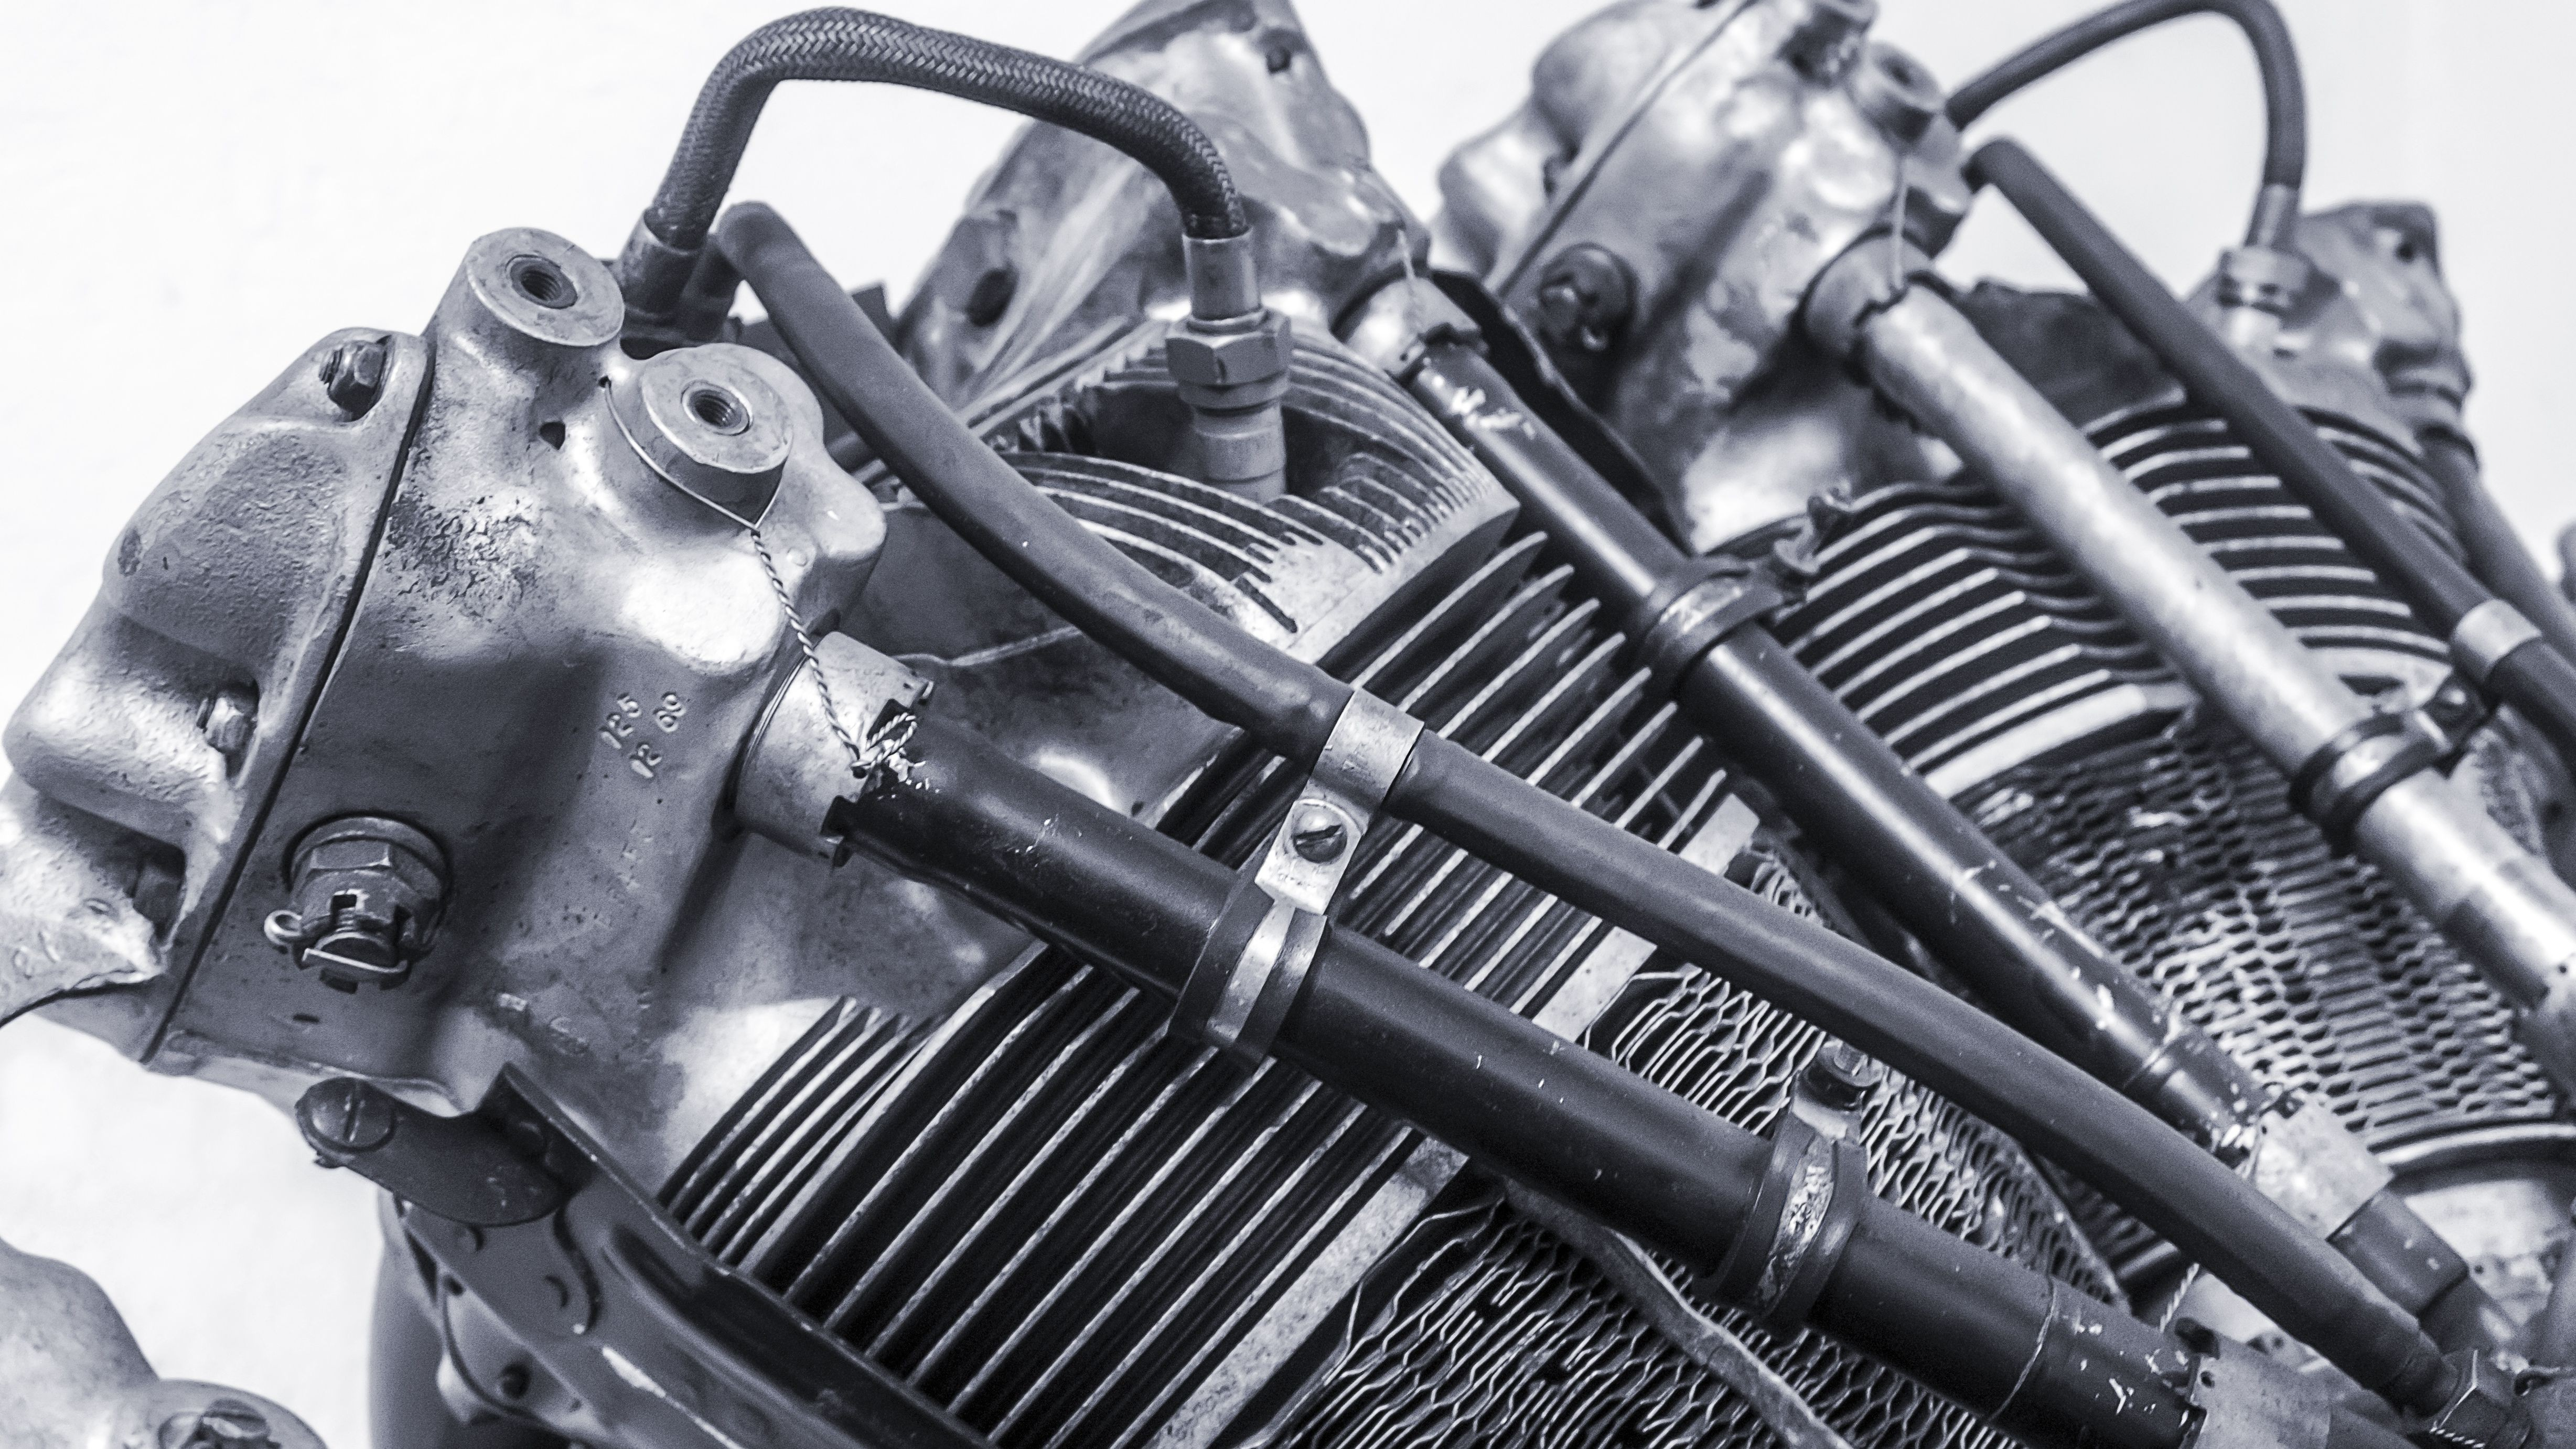 How Bike Engine Works with Diagram the Basics Of Motorcycle Engine Rebuilding Of How Bike Engine Works with Diagram